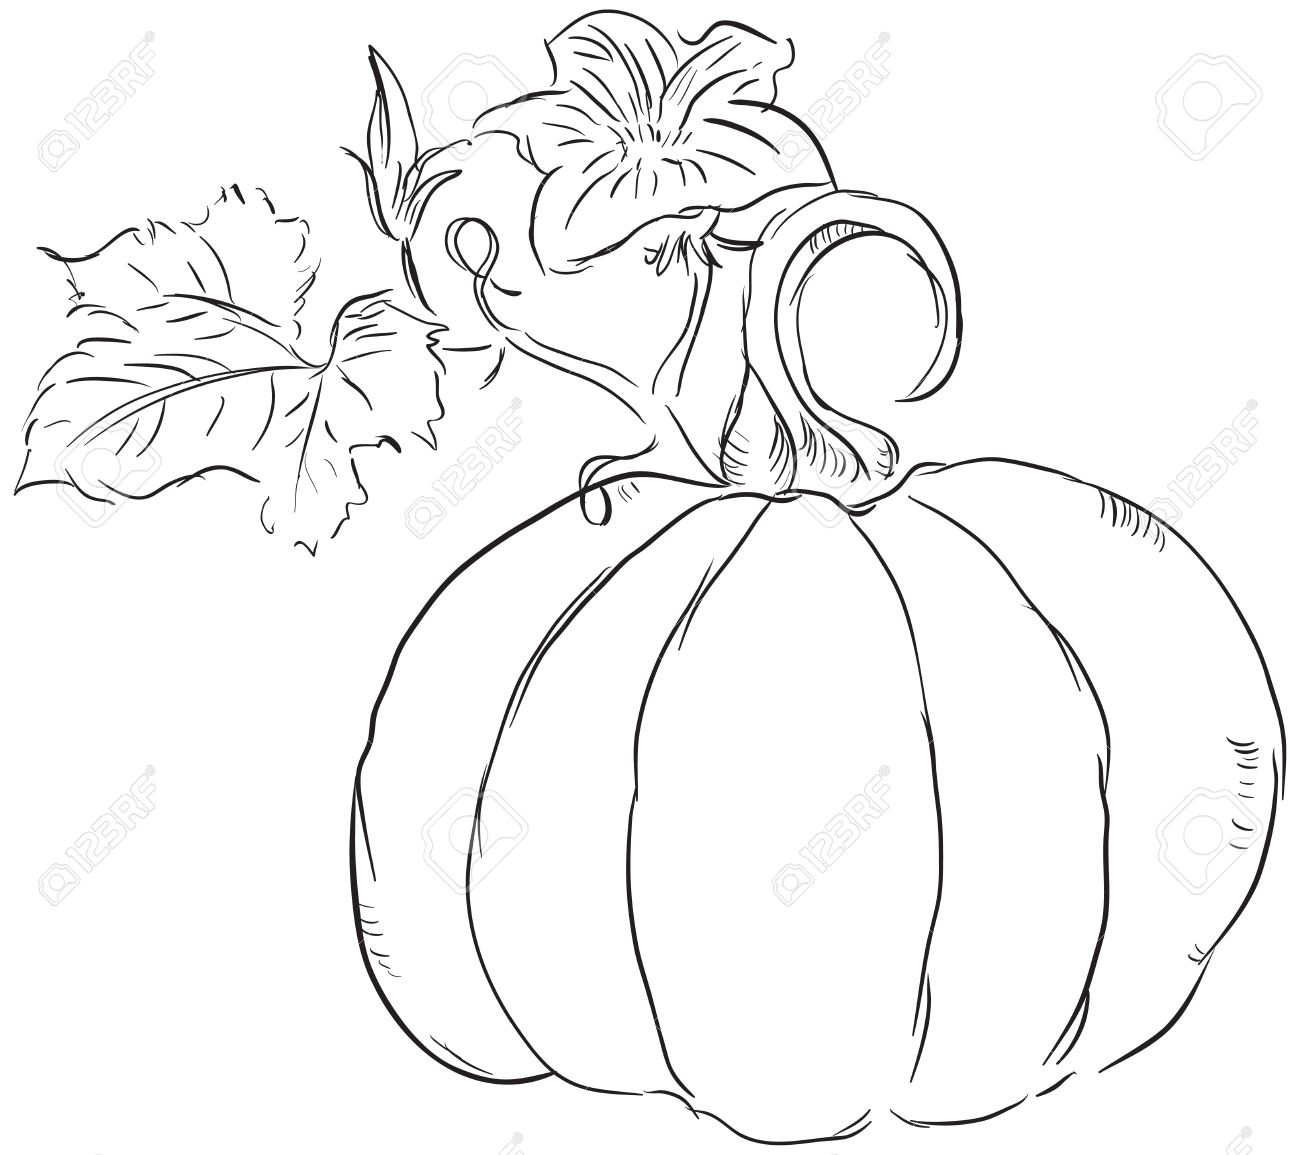 The Fruit Of The Pumpkin With Leaves And Blossoms Ovary Royalty Free Cliparts Vectors And Stock Illustration Image 15627792